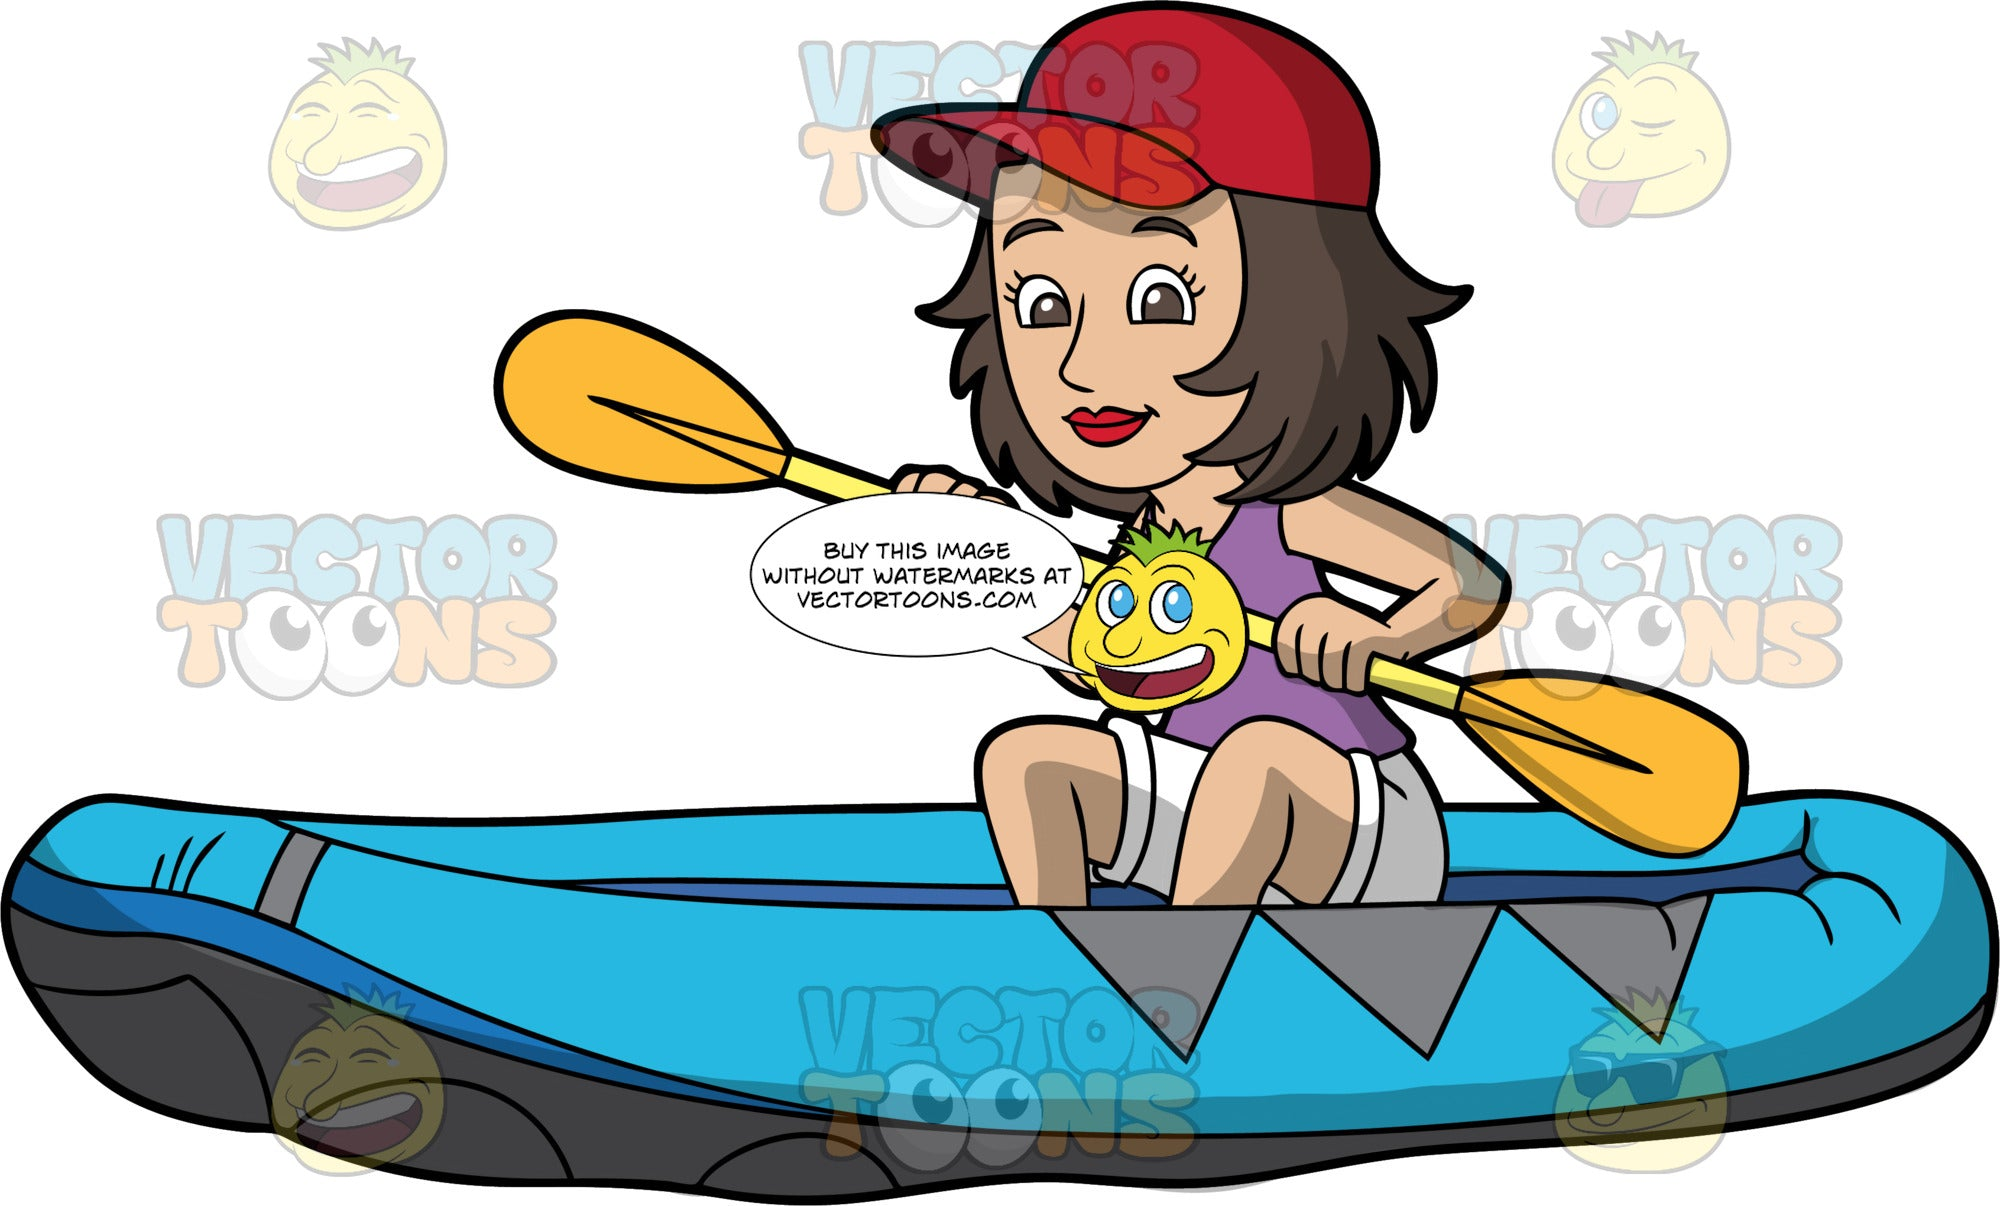 A Brunette Woman Sitting In A Blue Raft. A woman with brown hair and eyes, wearing white shorts, a purple tank top, and red baseball cap, guides her blue raft through calm waters using a double bladed paddle